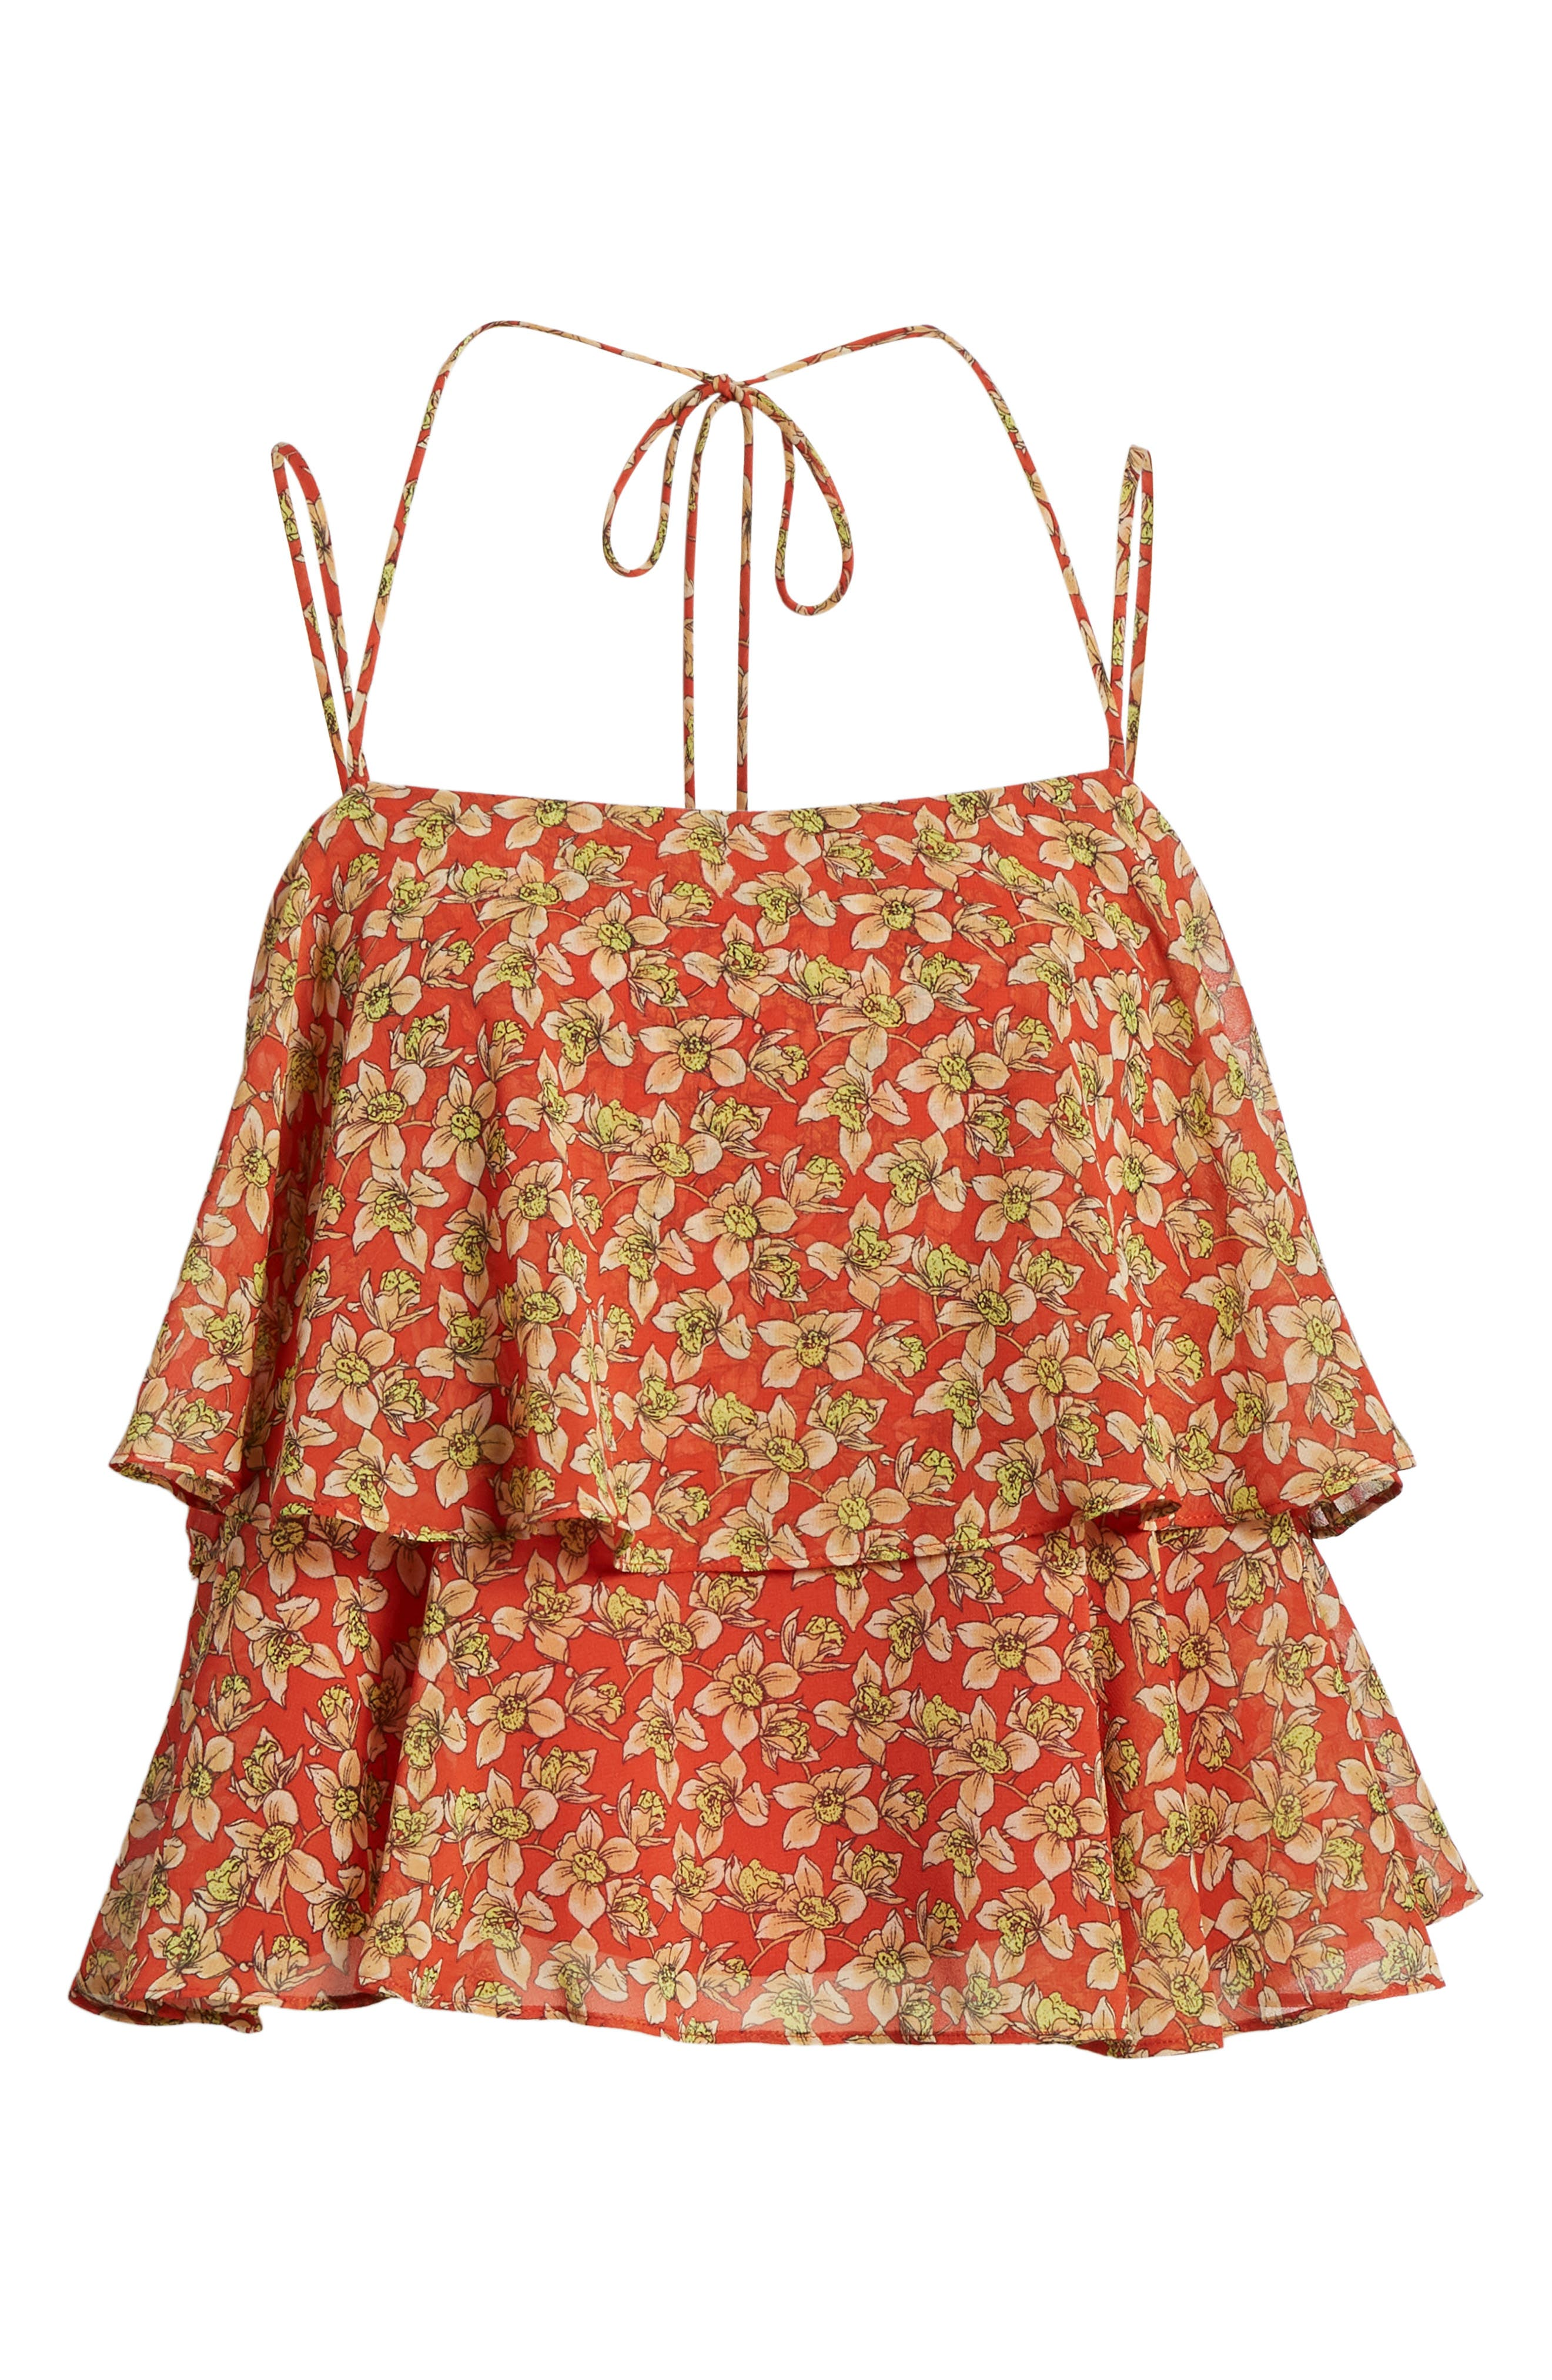 Cynthia Floral Tiered Top,                             Alternate thumbnail 7, color,                             RED MULTI